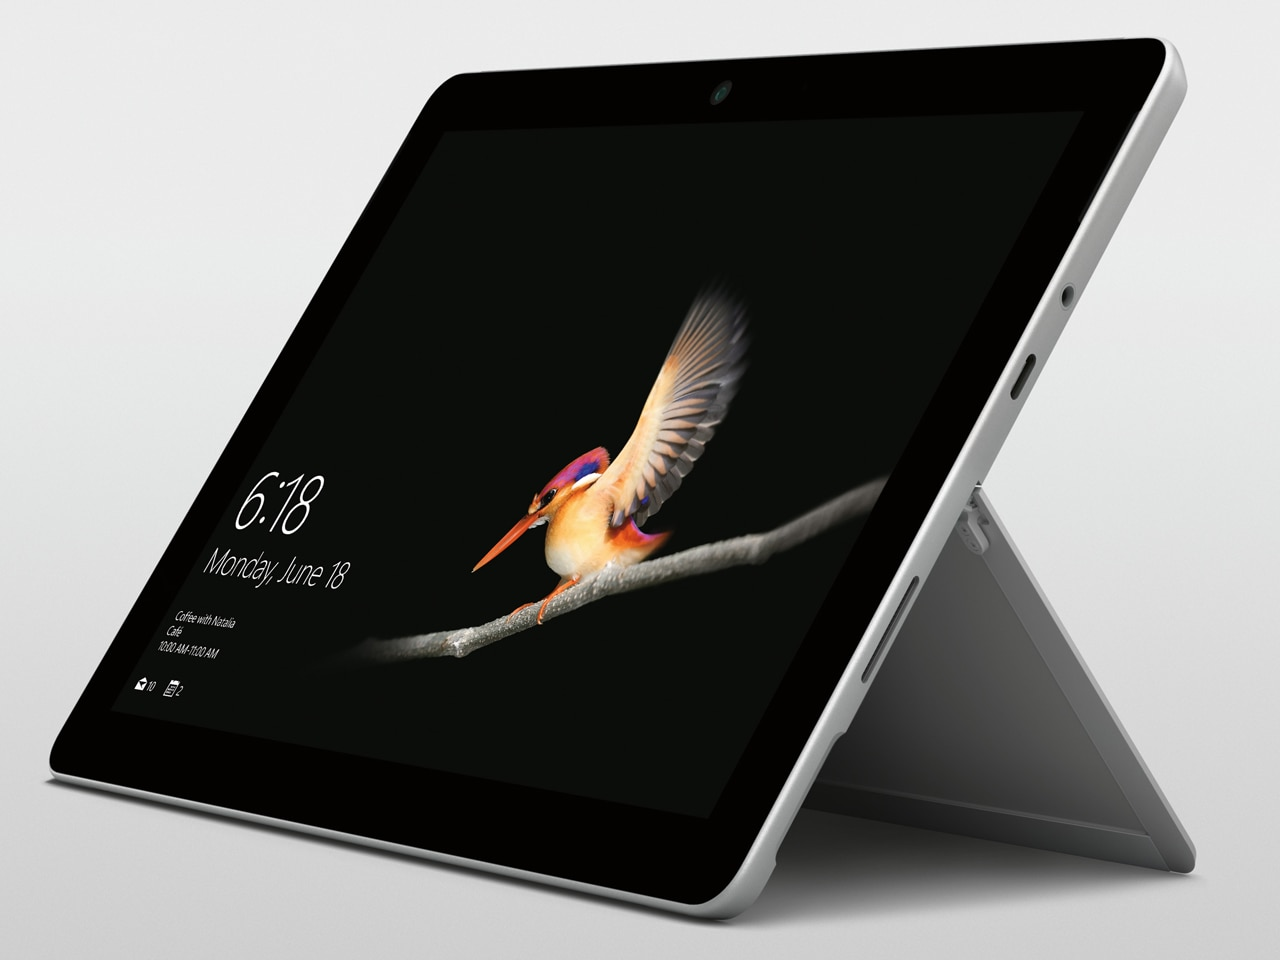 Surface Go MCZ-00032